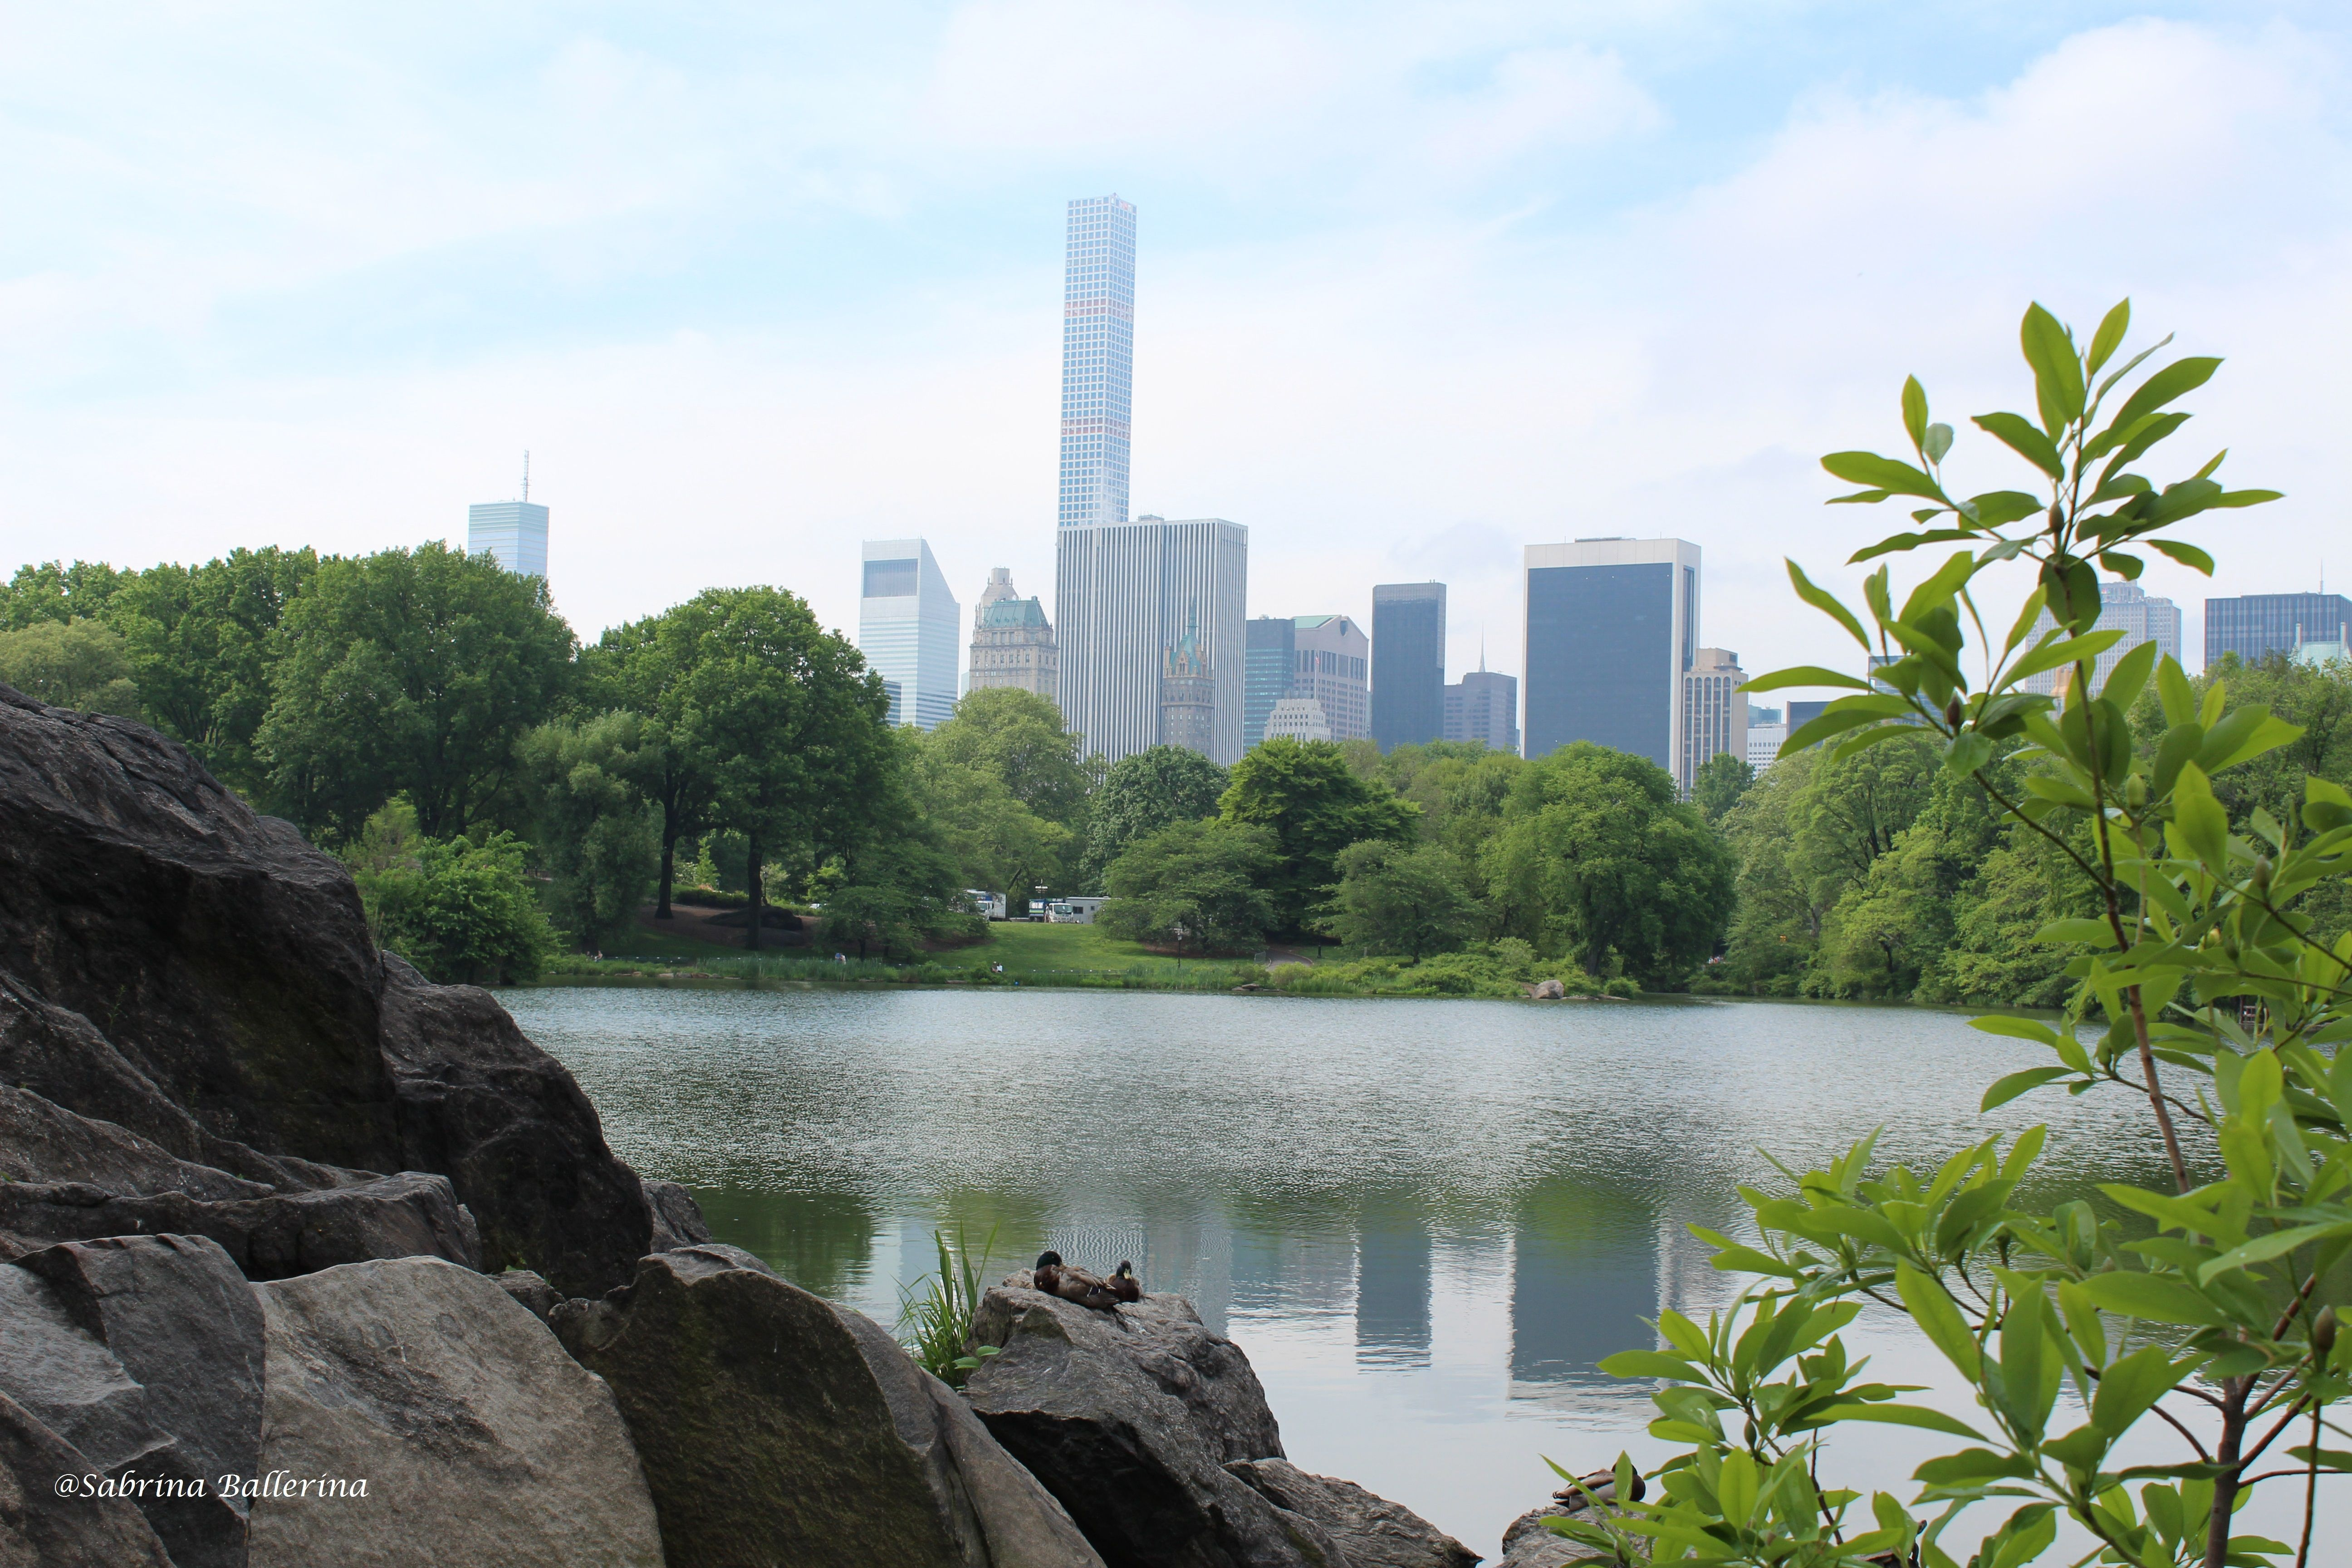 beautiful place at Central Park in New York :)